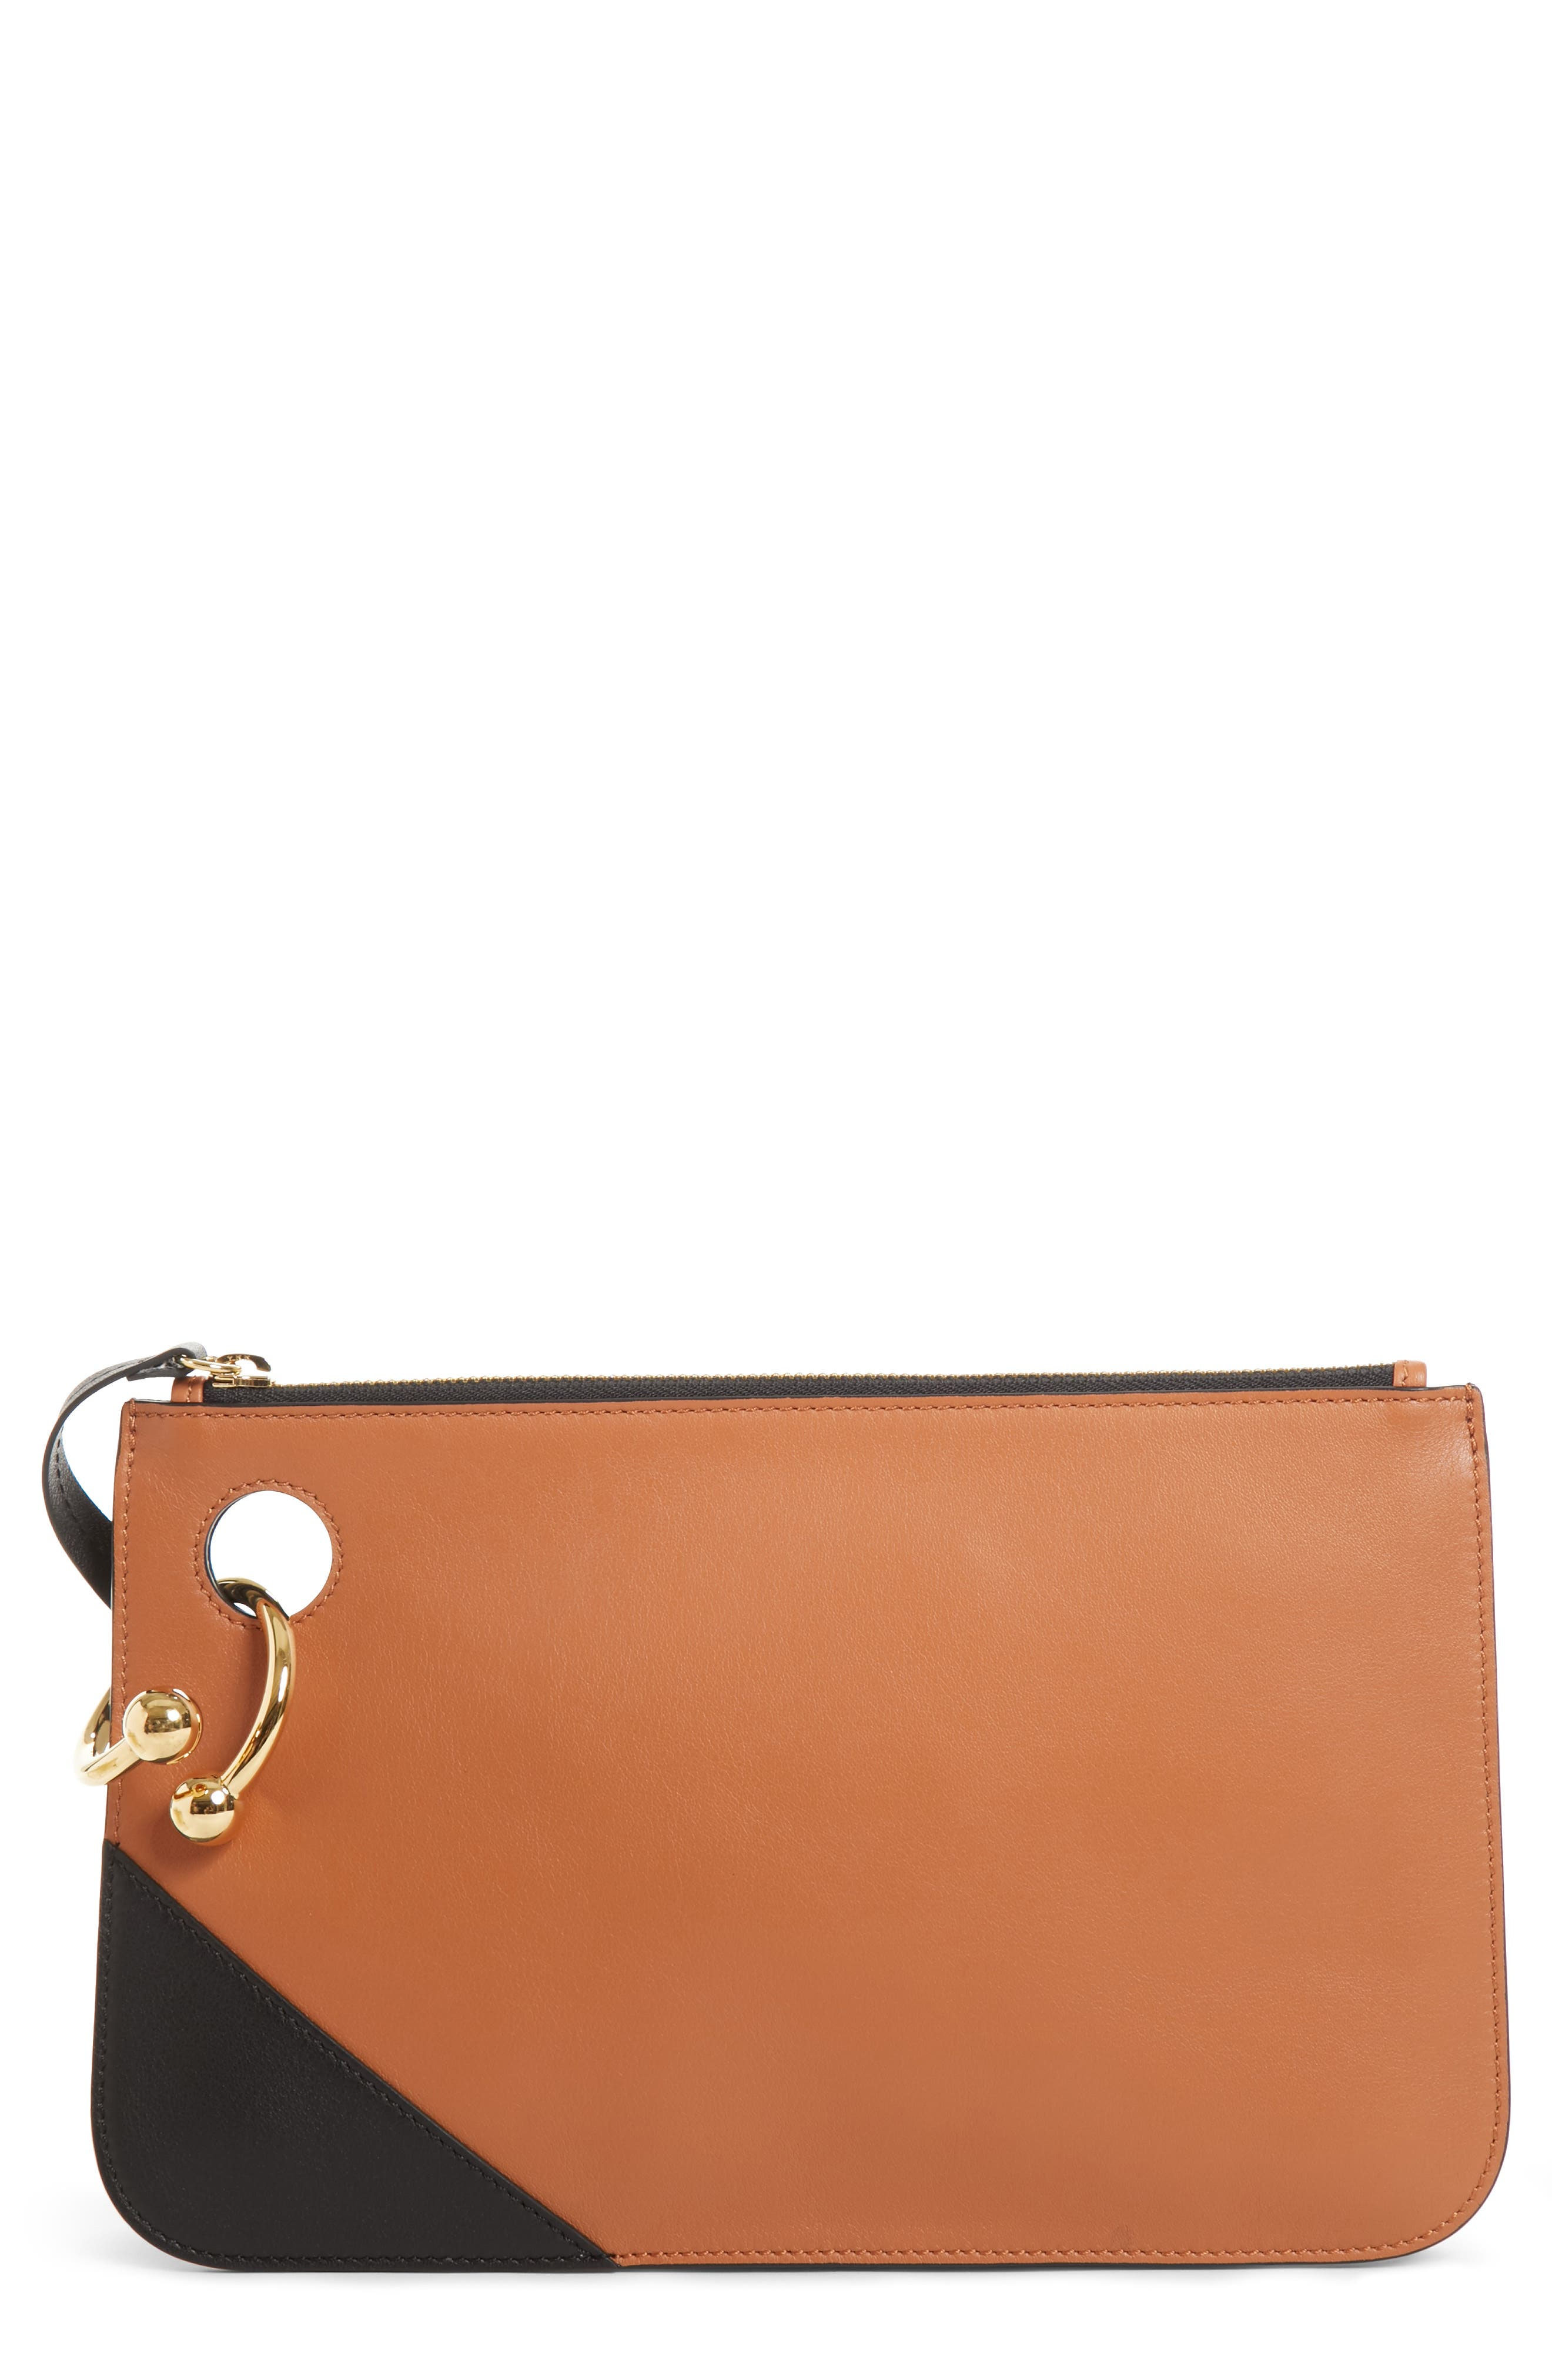 Main Image - J.W.ANDERSON Pierce Colorblock Leather Clutch